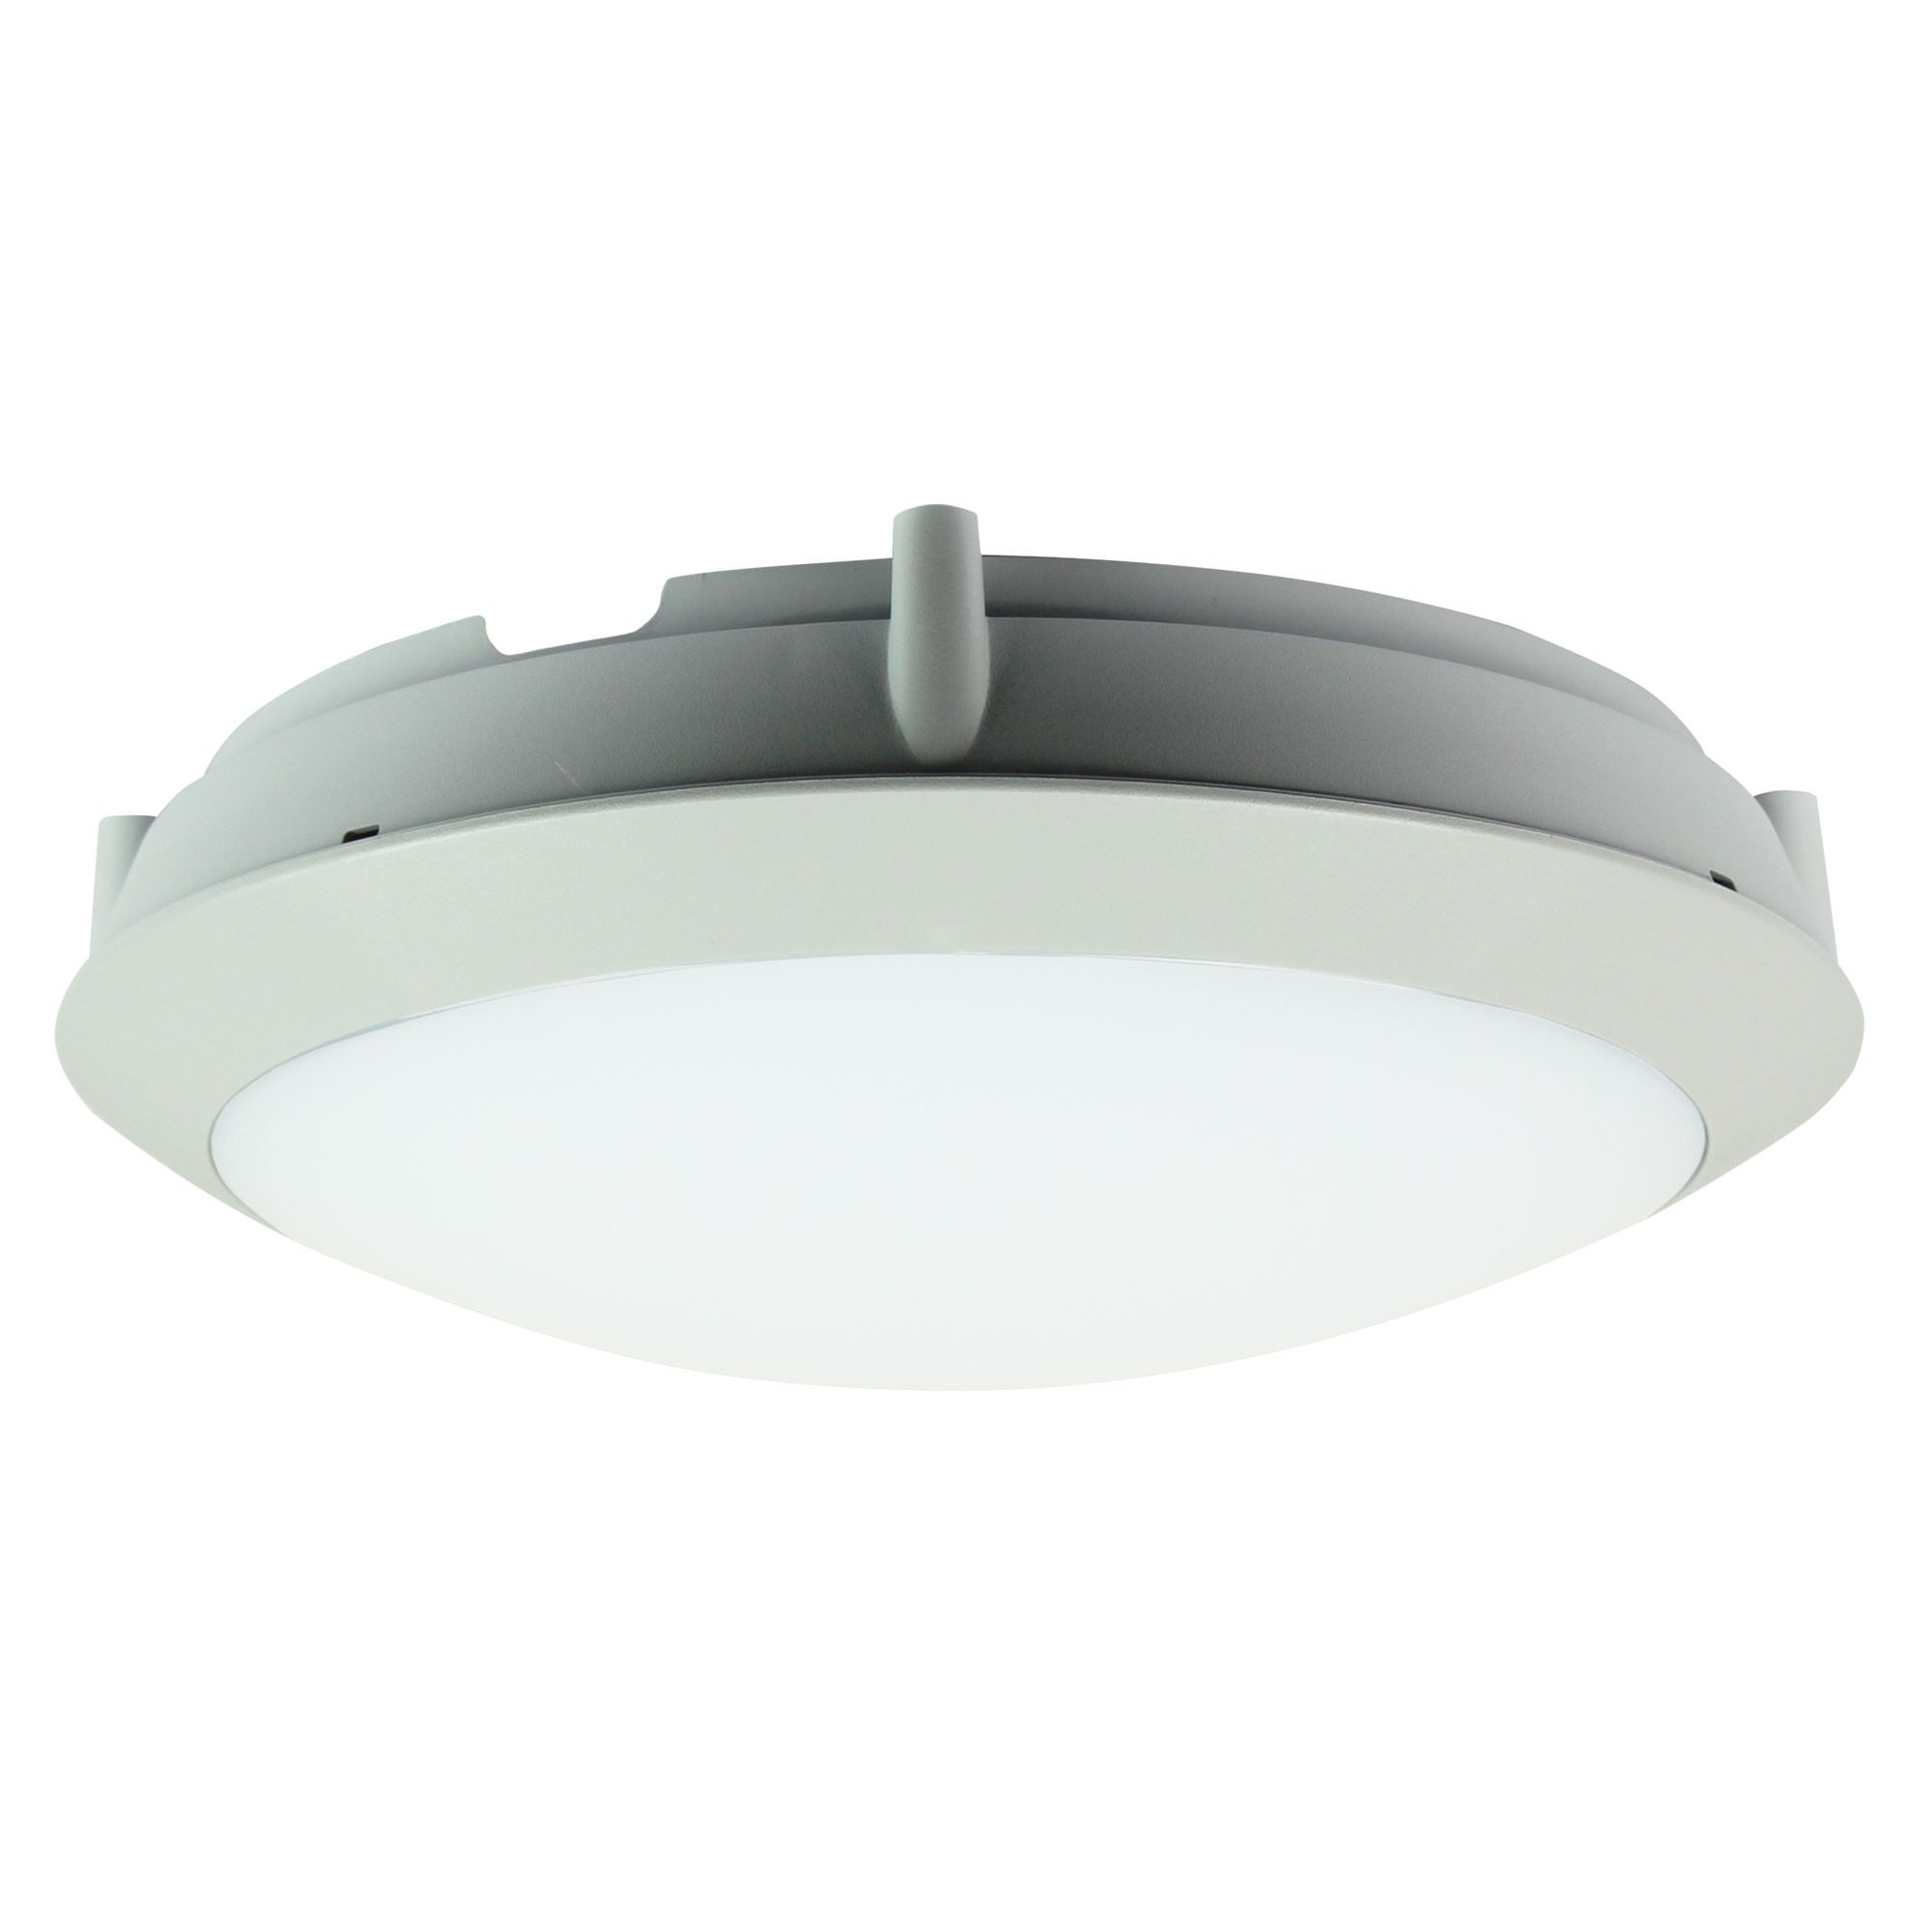 Duro IP66 Exterior LED Oyster Light, 30cm, Round, Grey